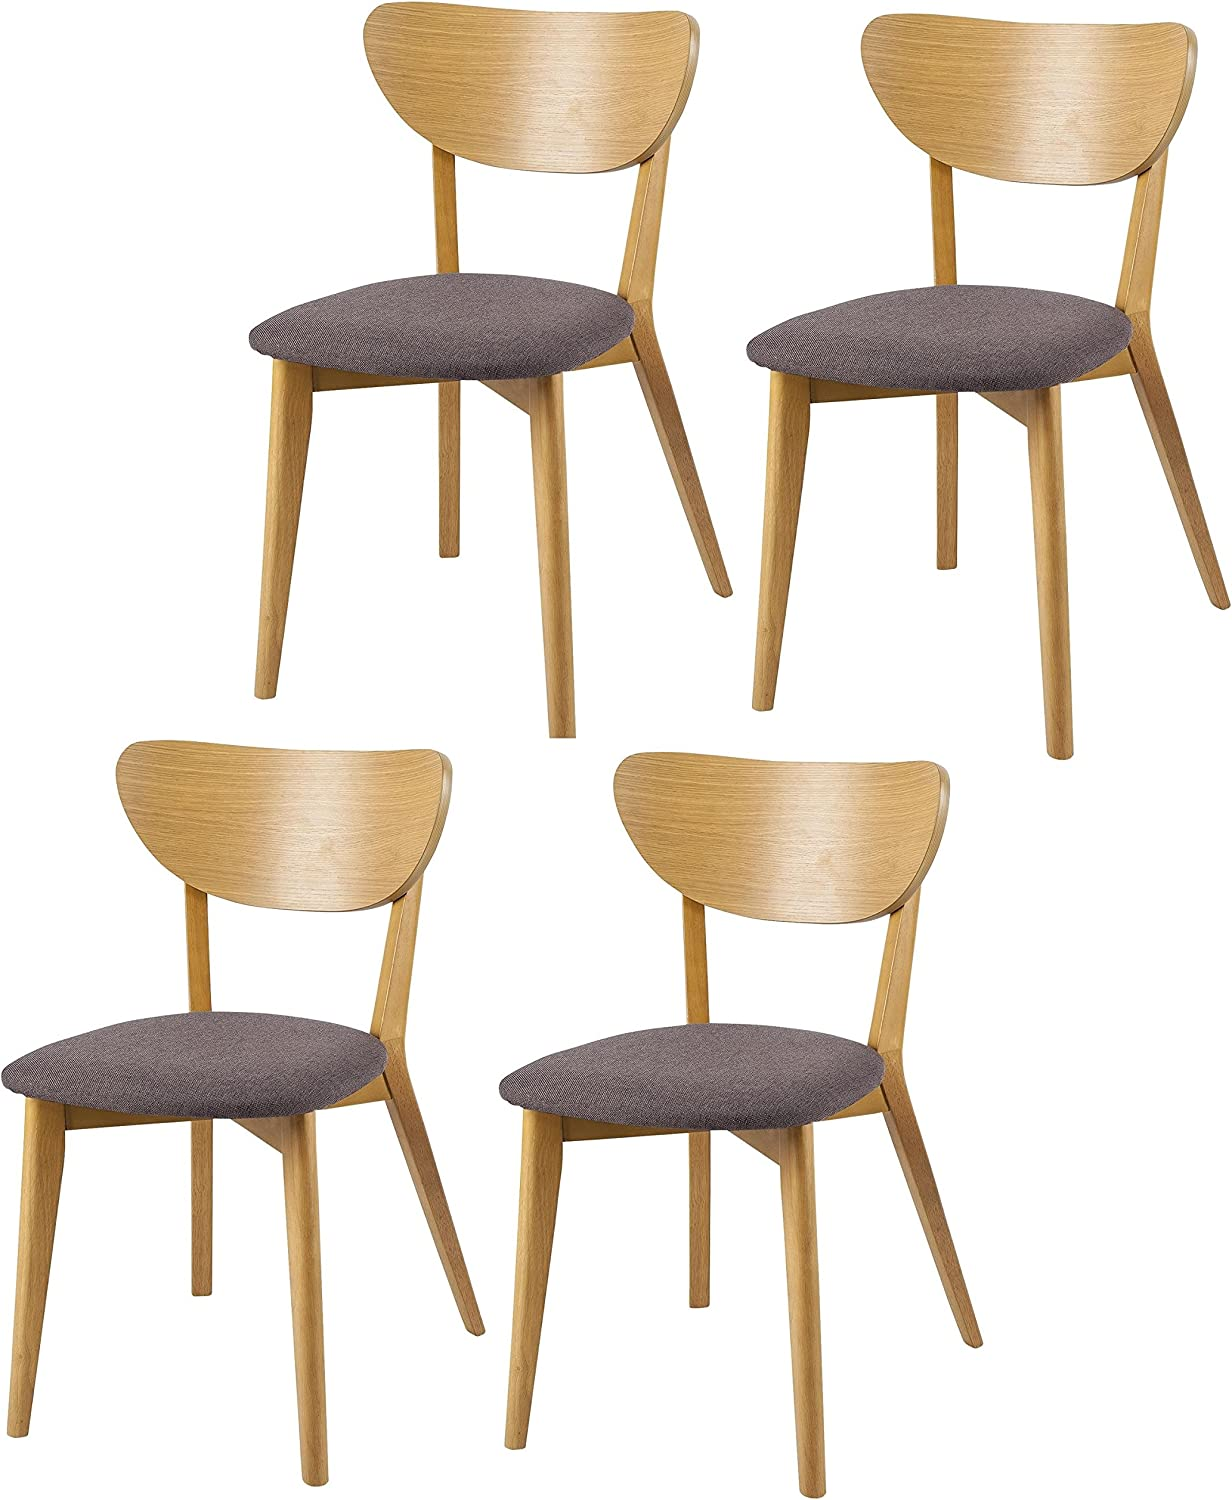 Tesco NEW Stockholm Retro Style Set of 11 Upholstered Dining Chairs